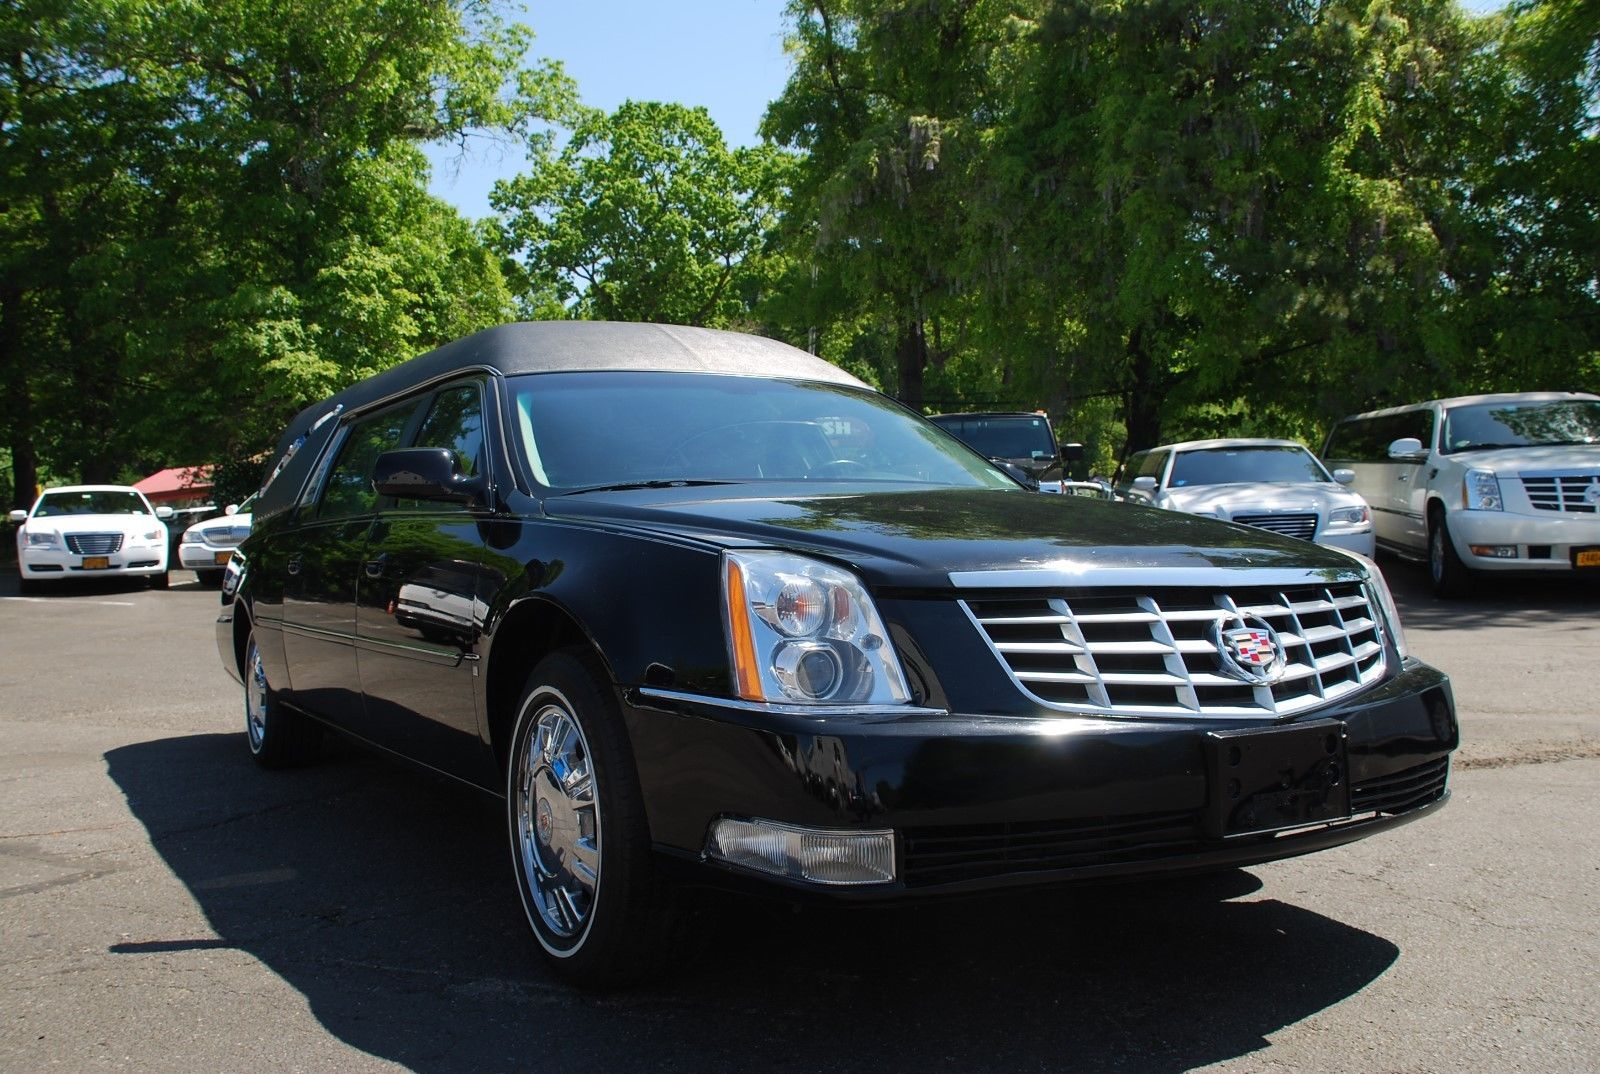 2010 cadillac dts black runs and drives excellent for sale. Black Bedroom Furniture Sets. Home Design Ideas